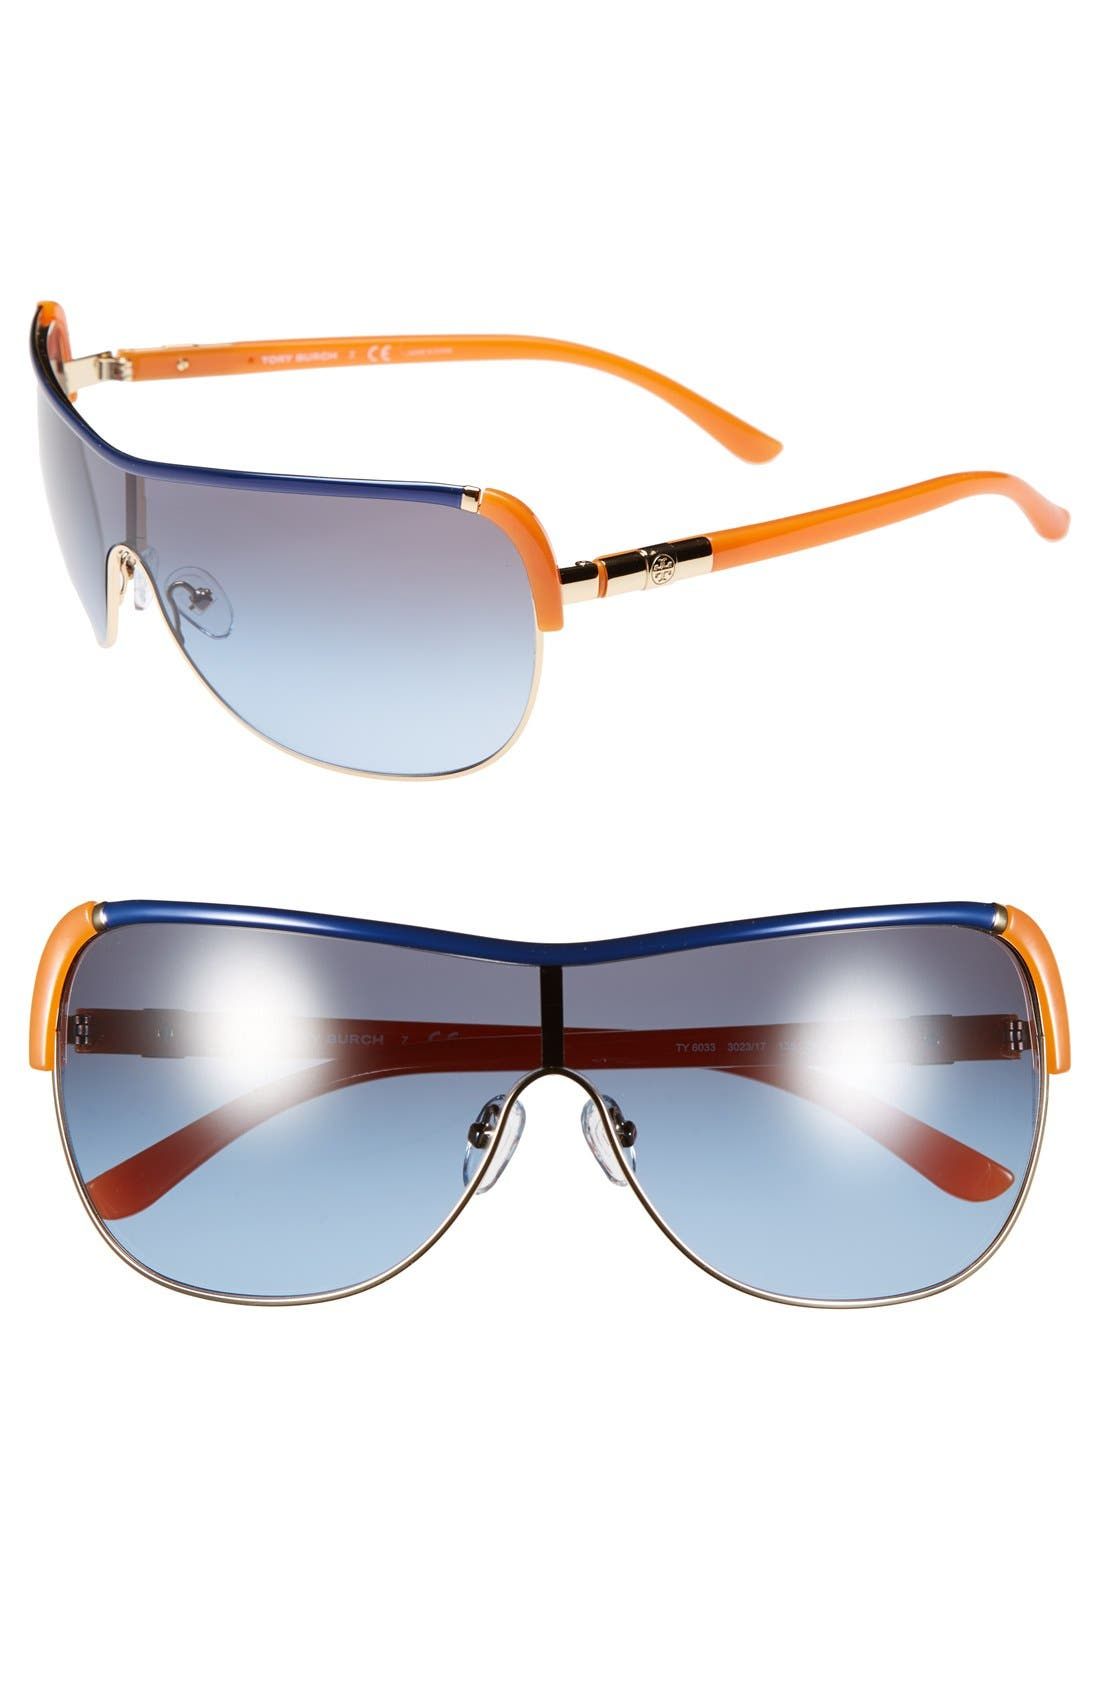 Main Image - Tory Burch 'Pilot' 34mm Metal Wrap Sunglasses